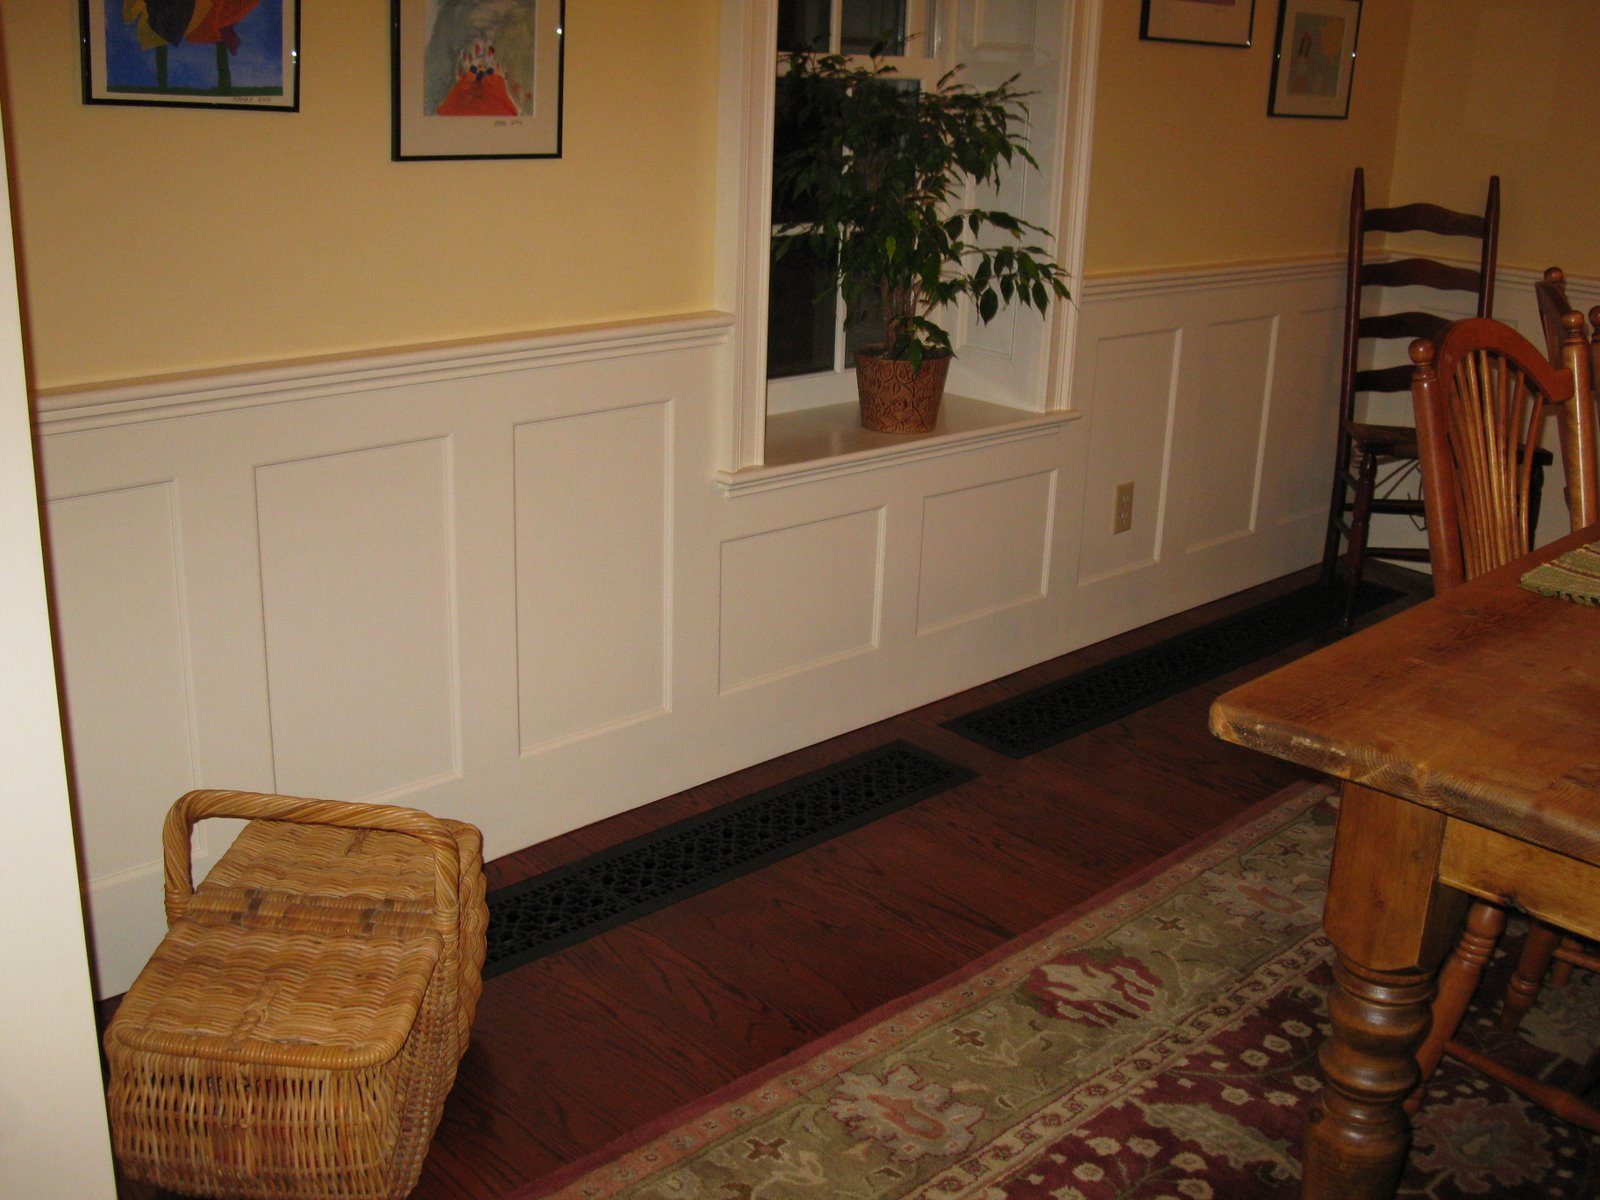 Installing Wainscoting - A Concord Carpenter on do it yourself wainscoting, how do you say wainscoting, how do you install fascia, how do you install crown molding, how install tongue and groove, how do you install stairs, how do you install stucco, how do you install siding, how tall should wainscoting be, how install beadboard wainscoting, how do you install wallpaper, how do you install shutters, how do you install windows, how do you install cabinets,